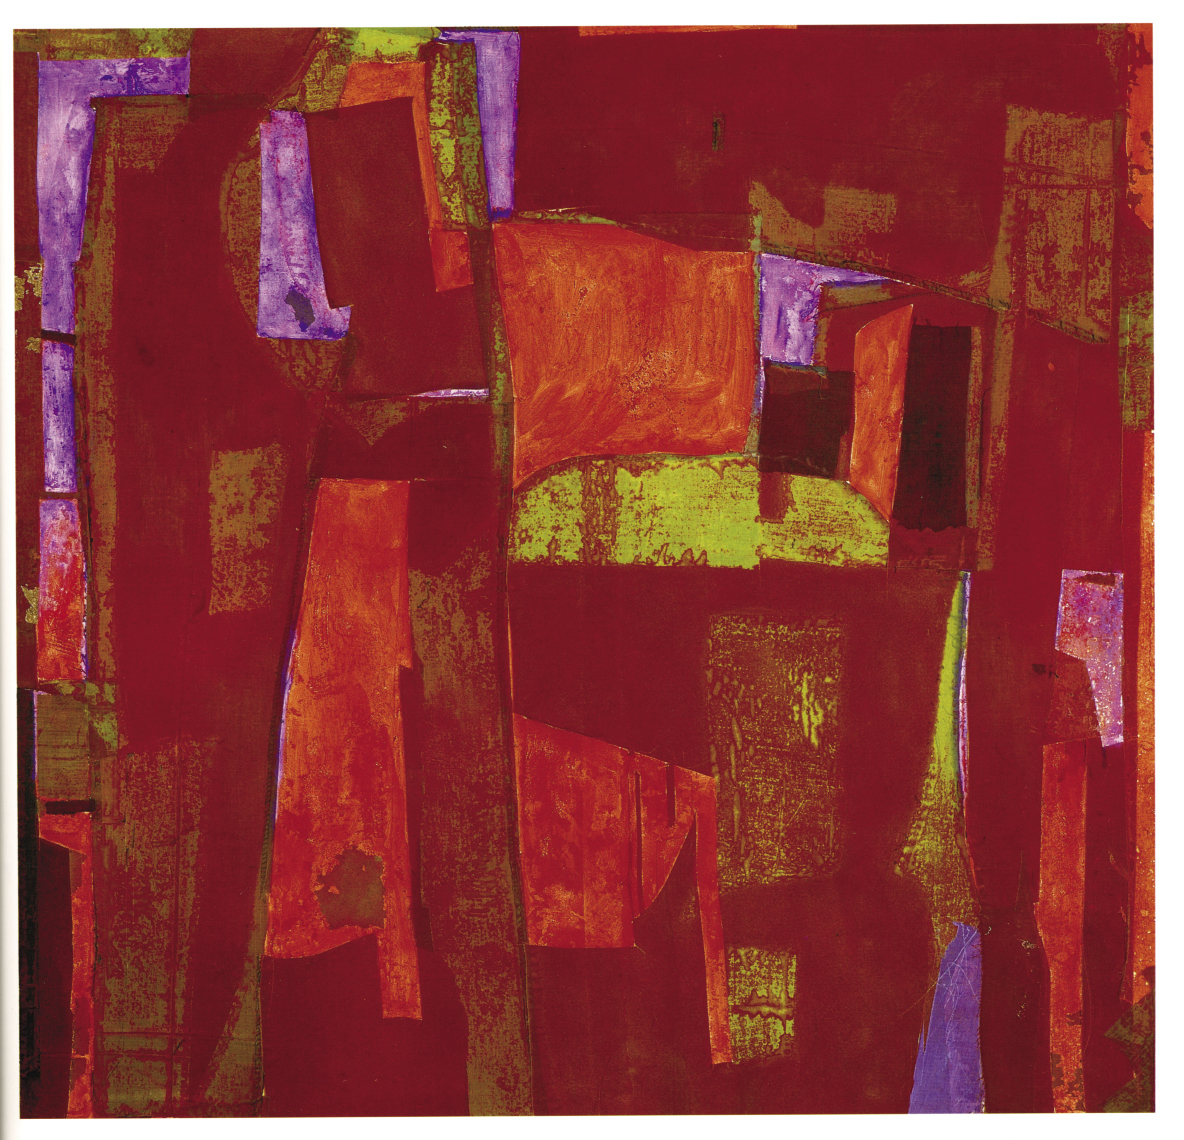 Red Square by William Halsey,  1997, oil/collage on Masonite;  courtesy of Halsey/McCallum Studio